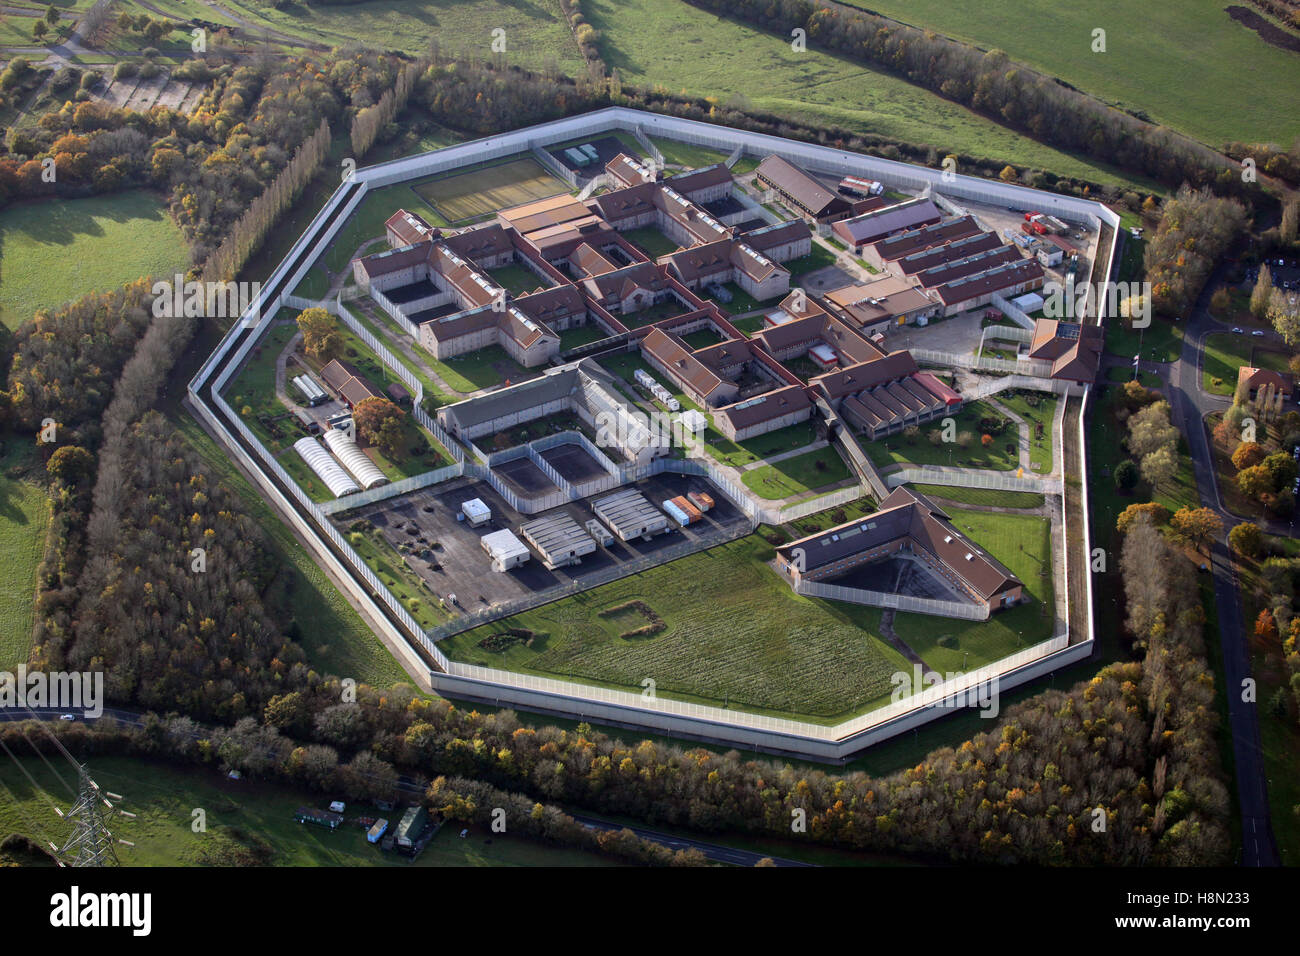 buy drone plane with Stock Photo Aerial View Of Hmp Bullingdon Prison Near Bicester Oxfordshire Uk 125852471 on Best Fpv And Uav Rc Airplane 1204011360 also 1159865218 as well Aircraft Carrier Sea  mand 397846639 together with Stock Photo Aerial View Of Hmp Bullingdon Prison Near Bicester Oxfordshire Uk 125852471 additionally Breathtaking Aerial Views Of H tons Real Estate.